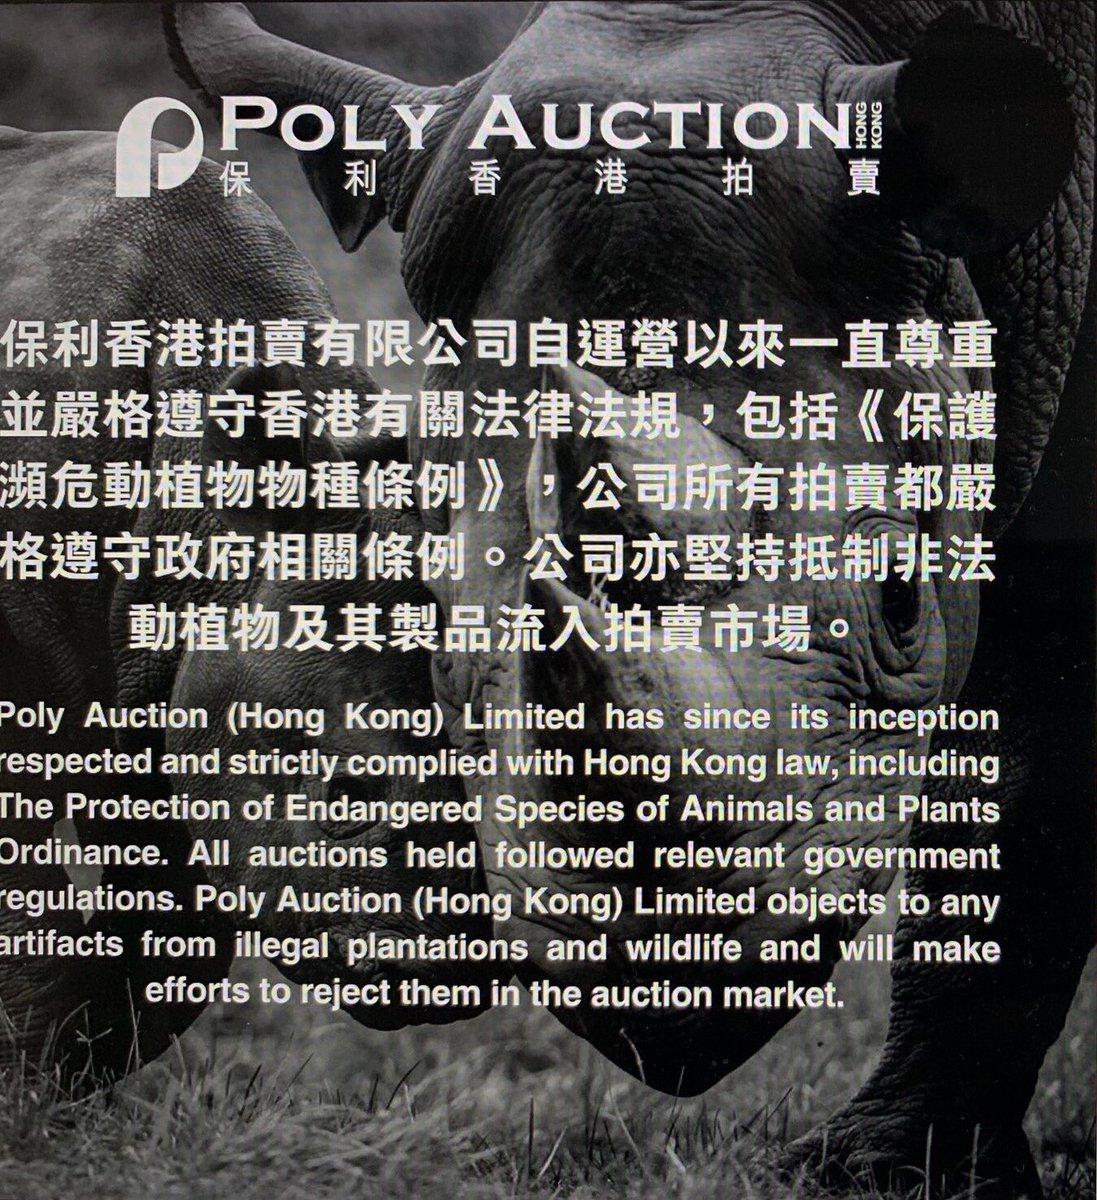 @PolyIncAuction say they will make 'efforts' to reject illegal wildlife products from the auction market.  That is not good enough.  Why not state empathetically @PolyIncAuction that you will ban all #rhinohorn trade, irrespective of age? #EndWildlifeCrime <br>http://pic.twitter.com/YKNS6CdM4F